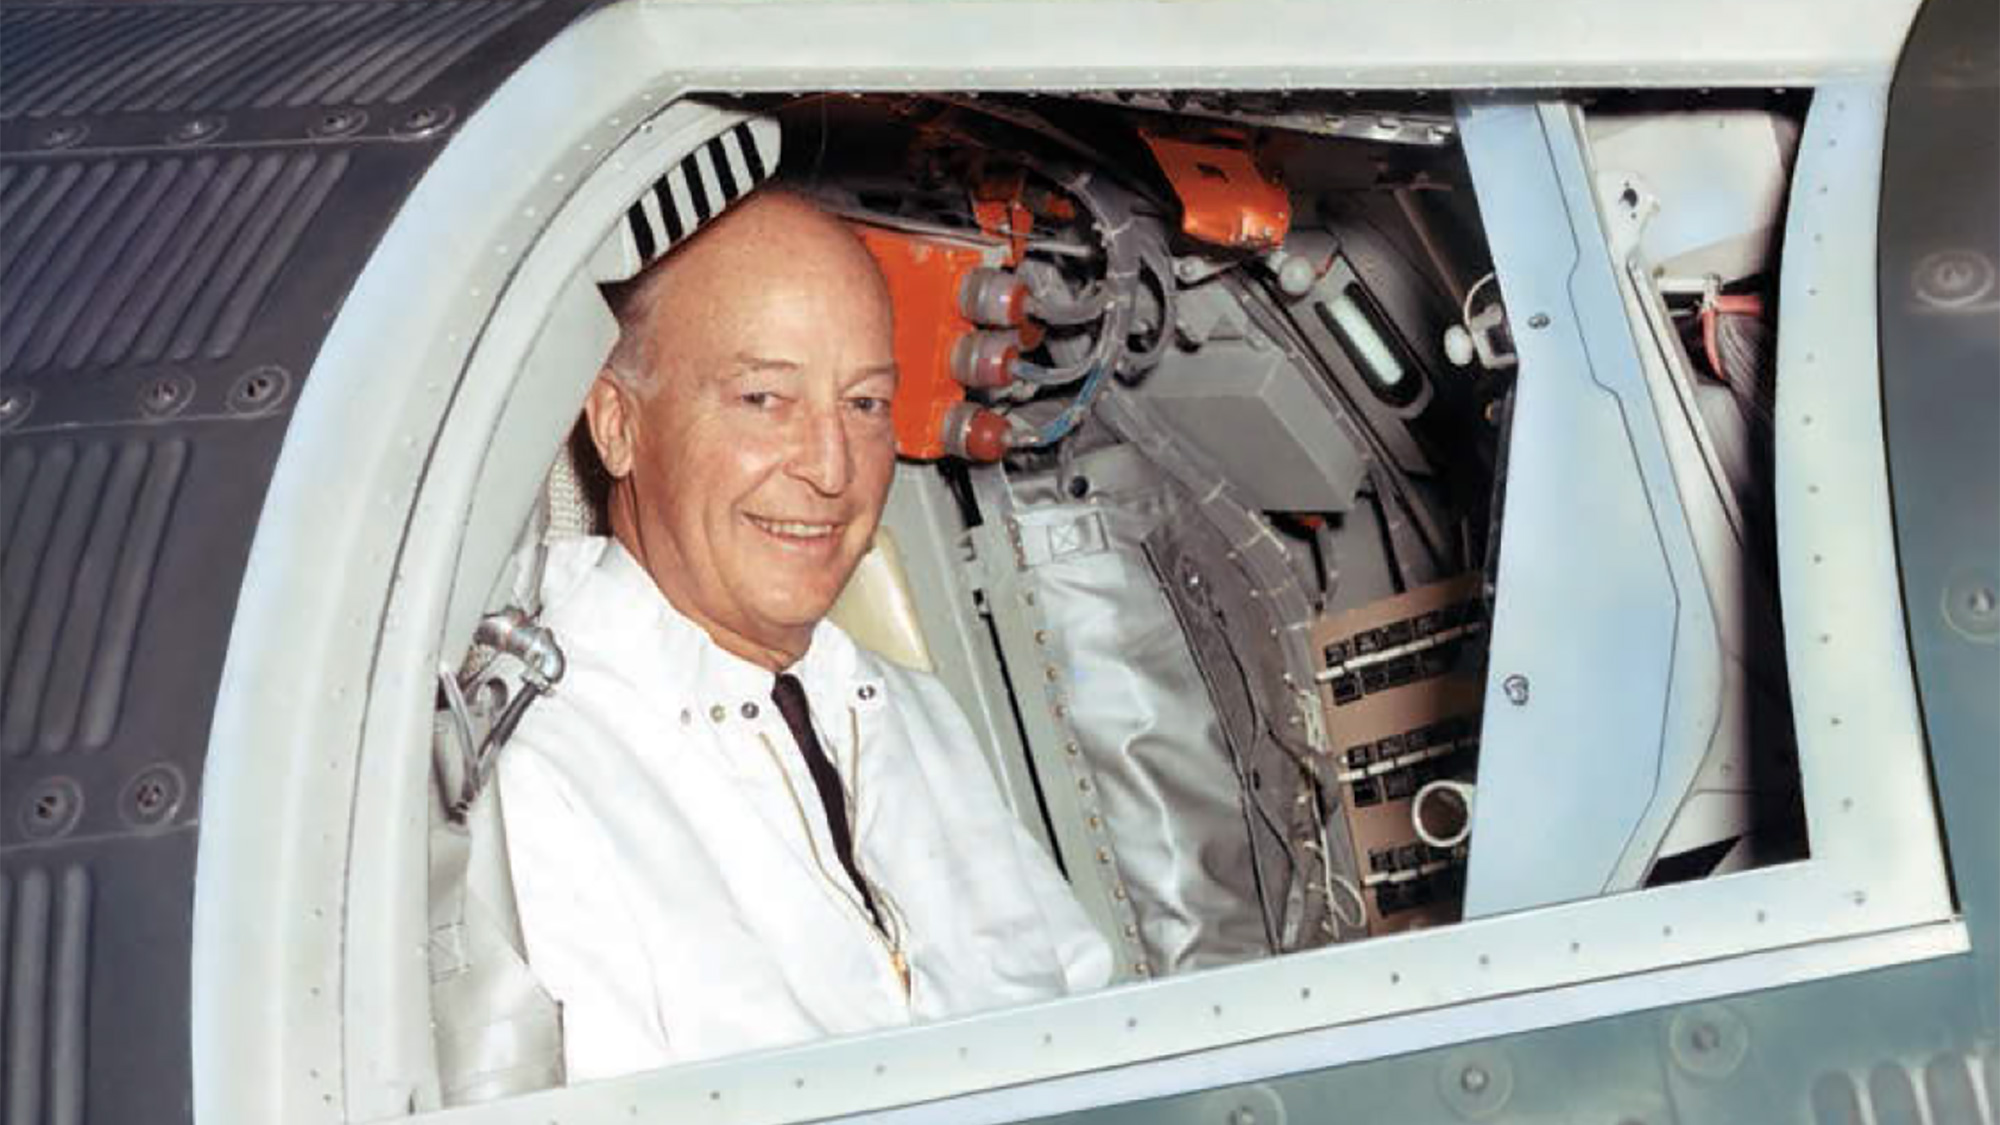 Herbert F Johnson jr. in een Mercury-ruimtecapsule bij McDonnell Aircraft